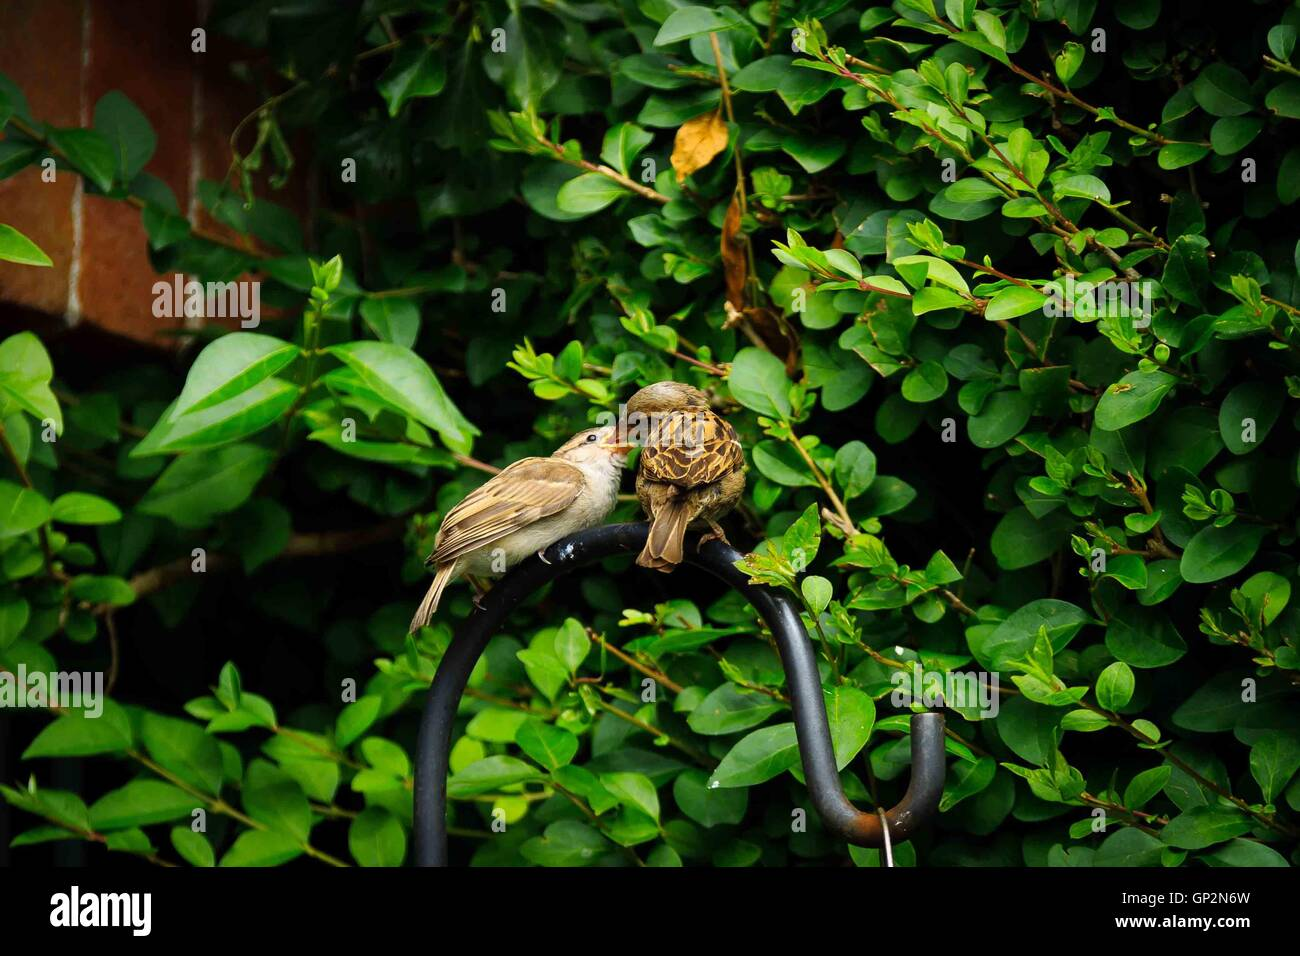 A baby sparrow being fed by it's parent perched on a wrought iron hoop  in an English garden - Stock Image